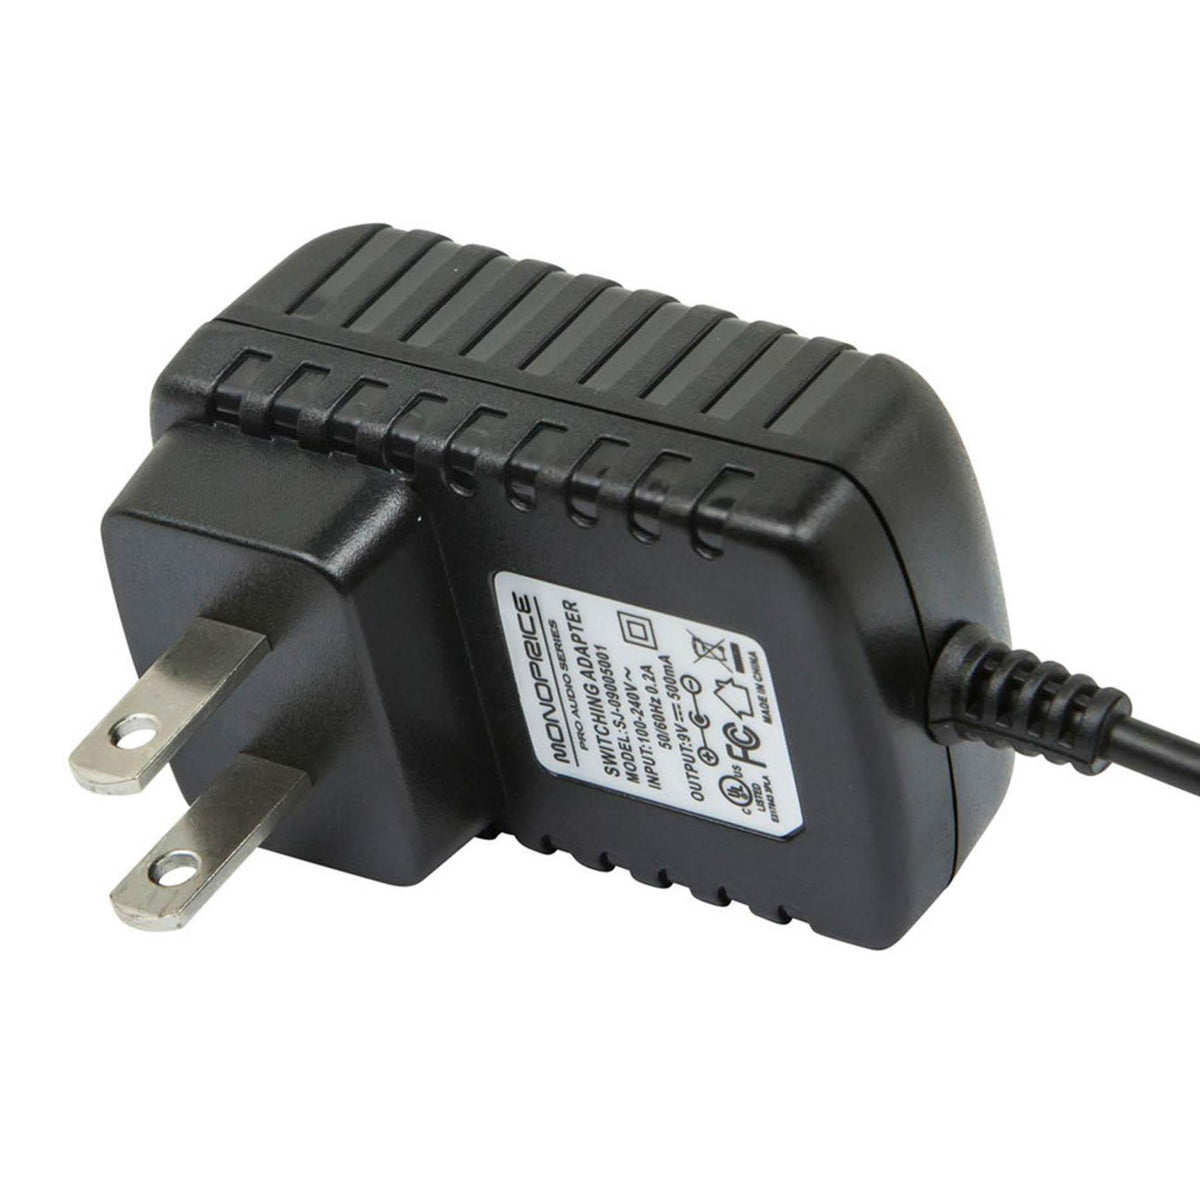 Monoprice 9VDC 500mA Power Adapter